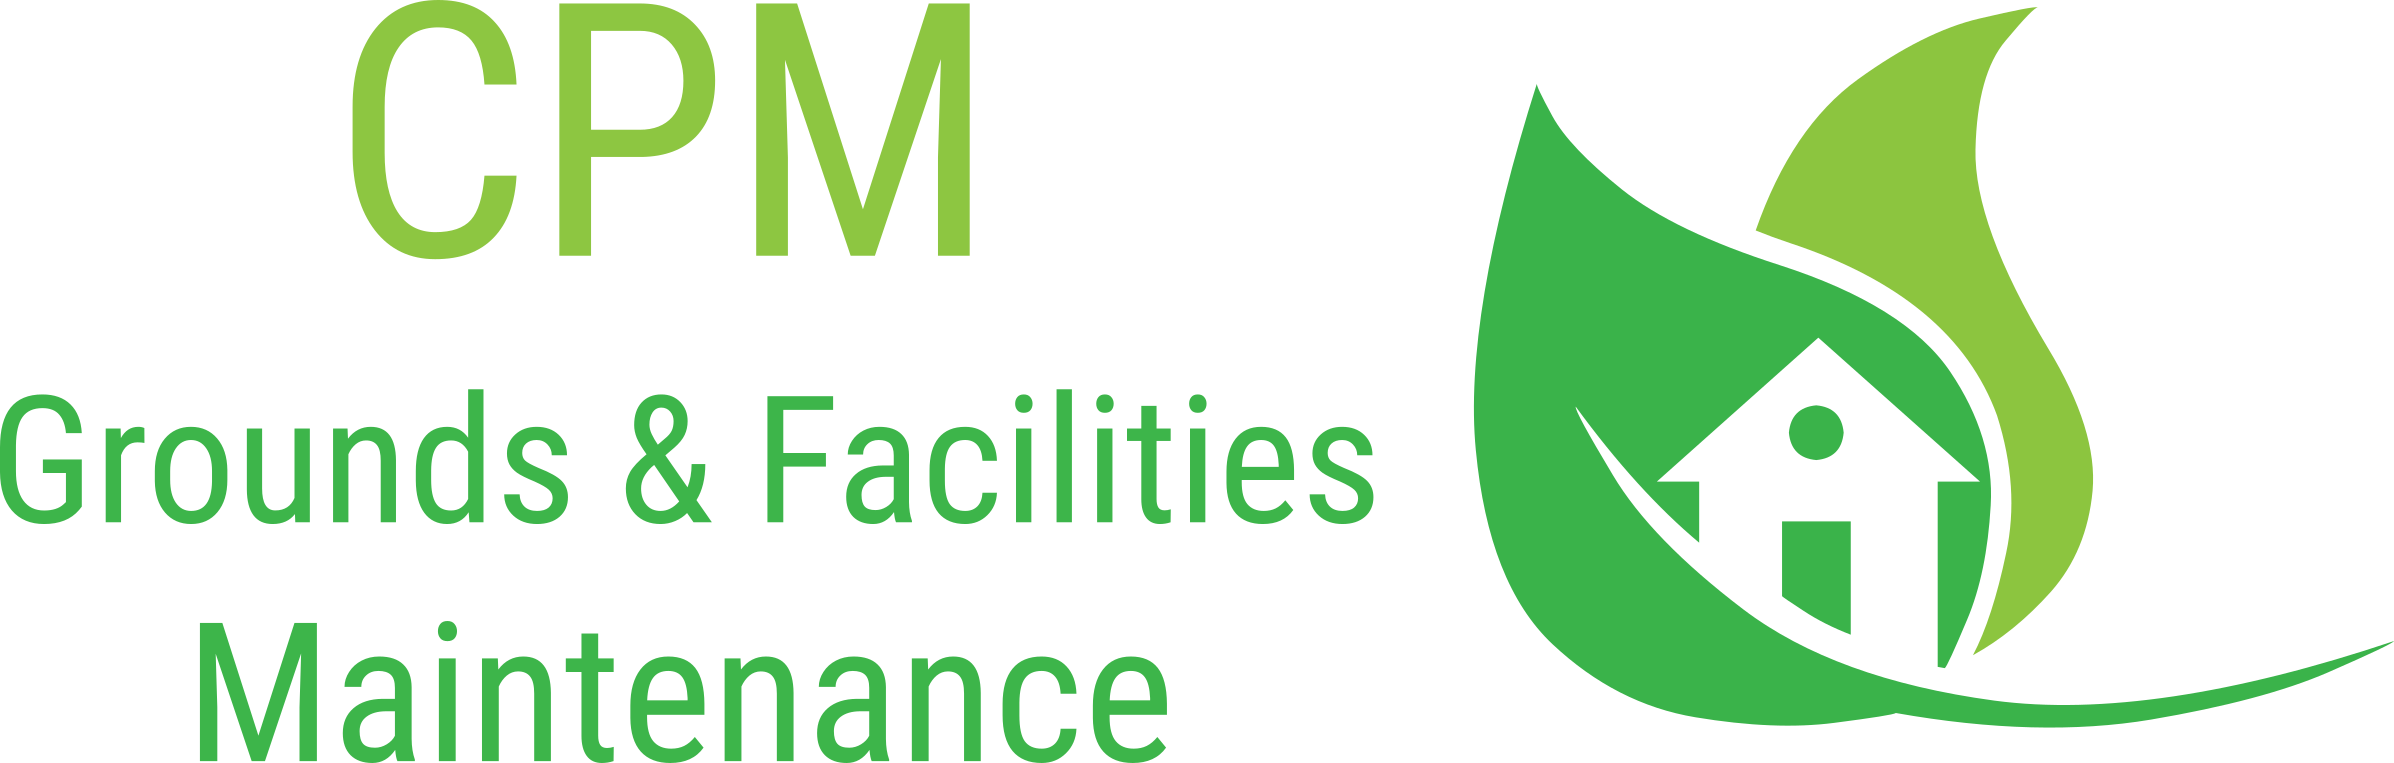 CPM Grounds maintenance & Facilities